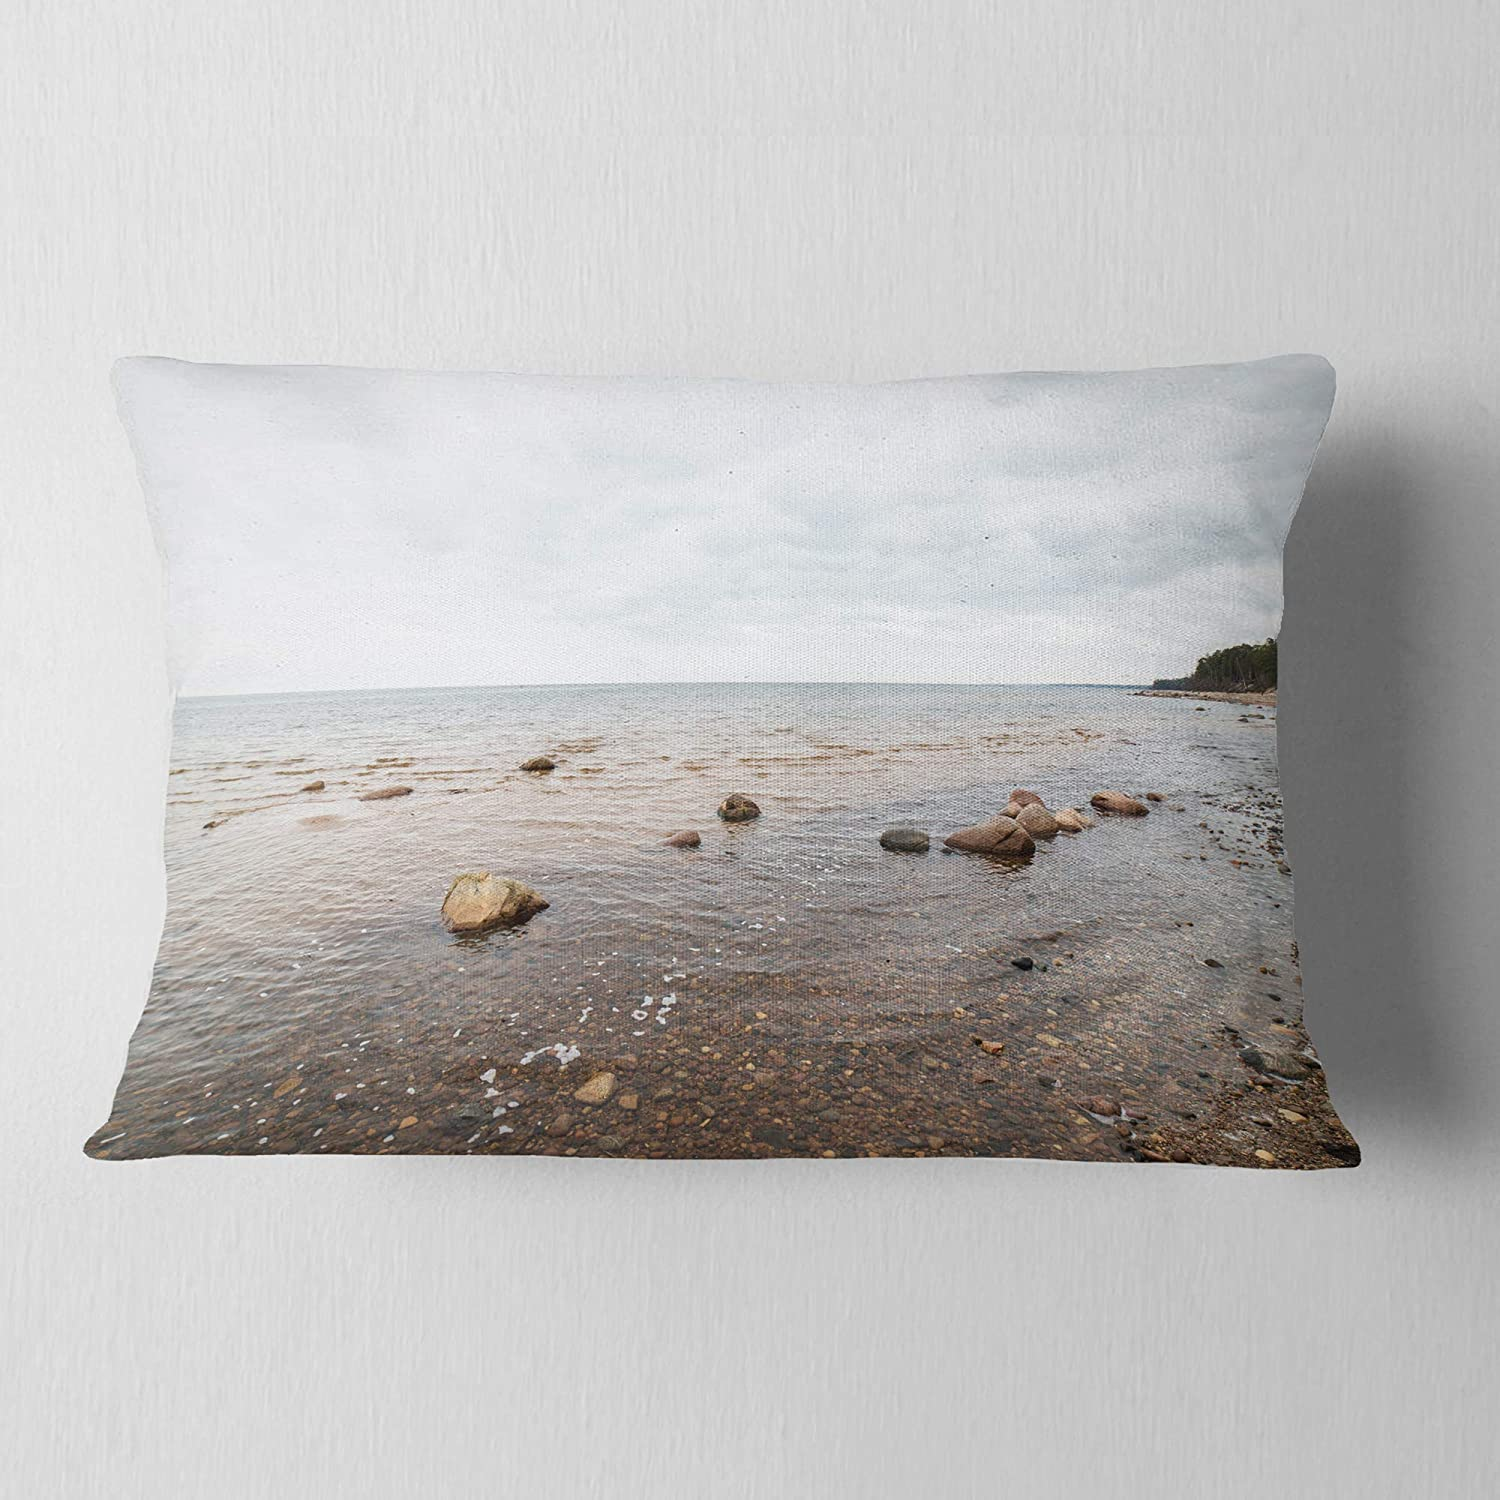 Sofa Throw Pillow 12 in Insert Printed On Both Side Designart CU8968-12-20 Rocky Autumn Beach Seashore Photography Lumbar Cushion Cover for Living Room x 20 in in